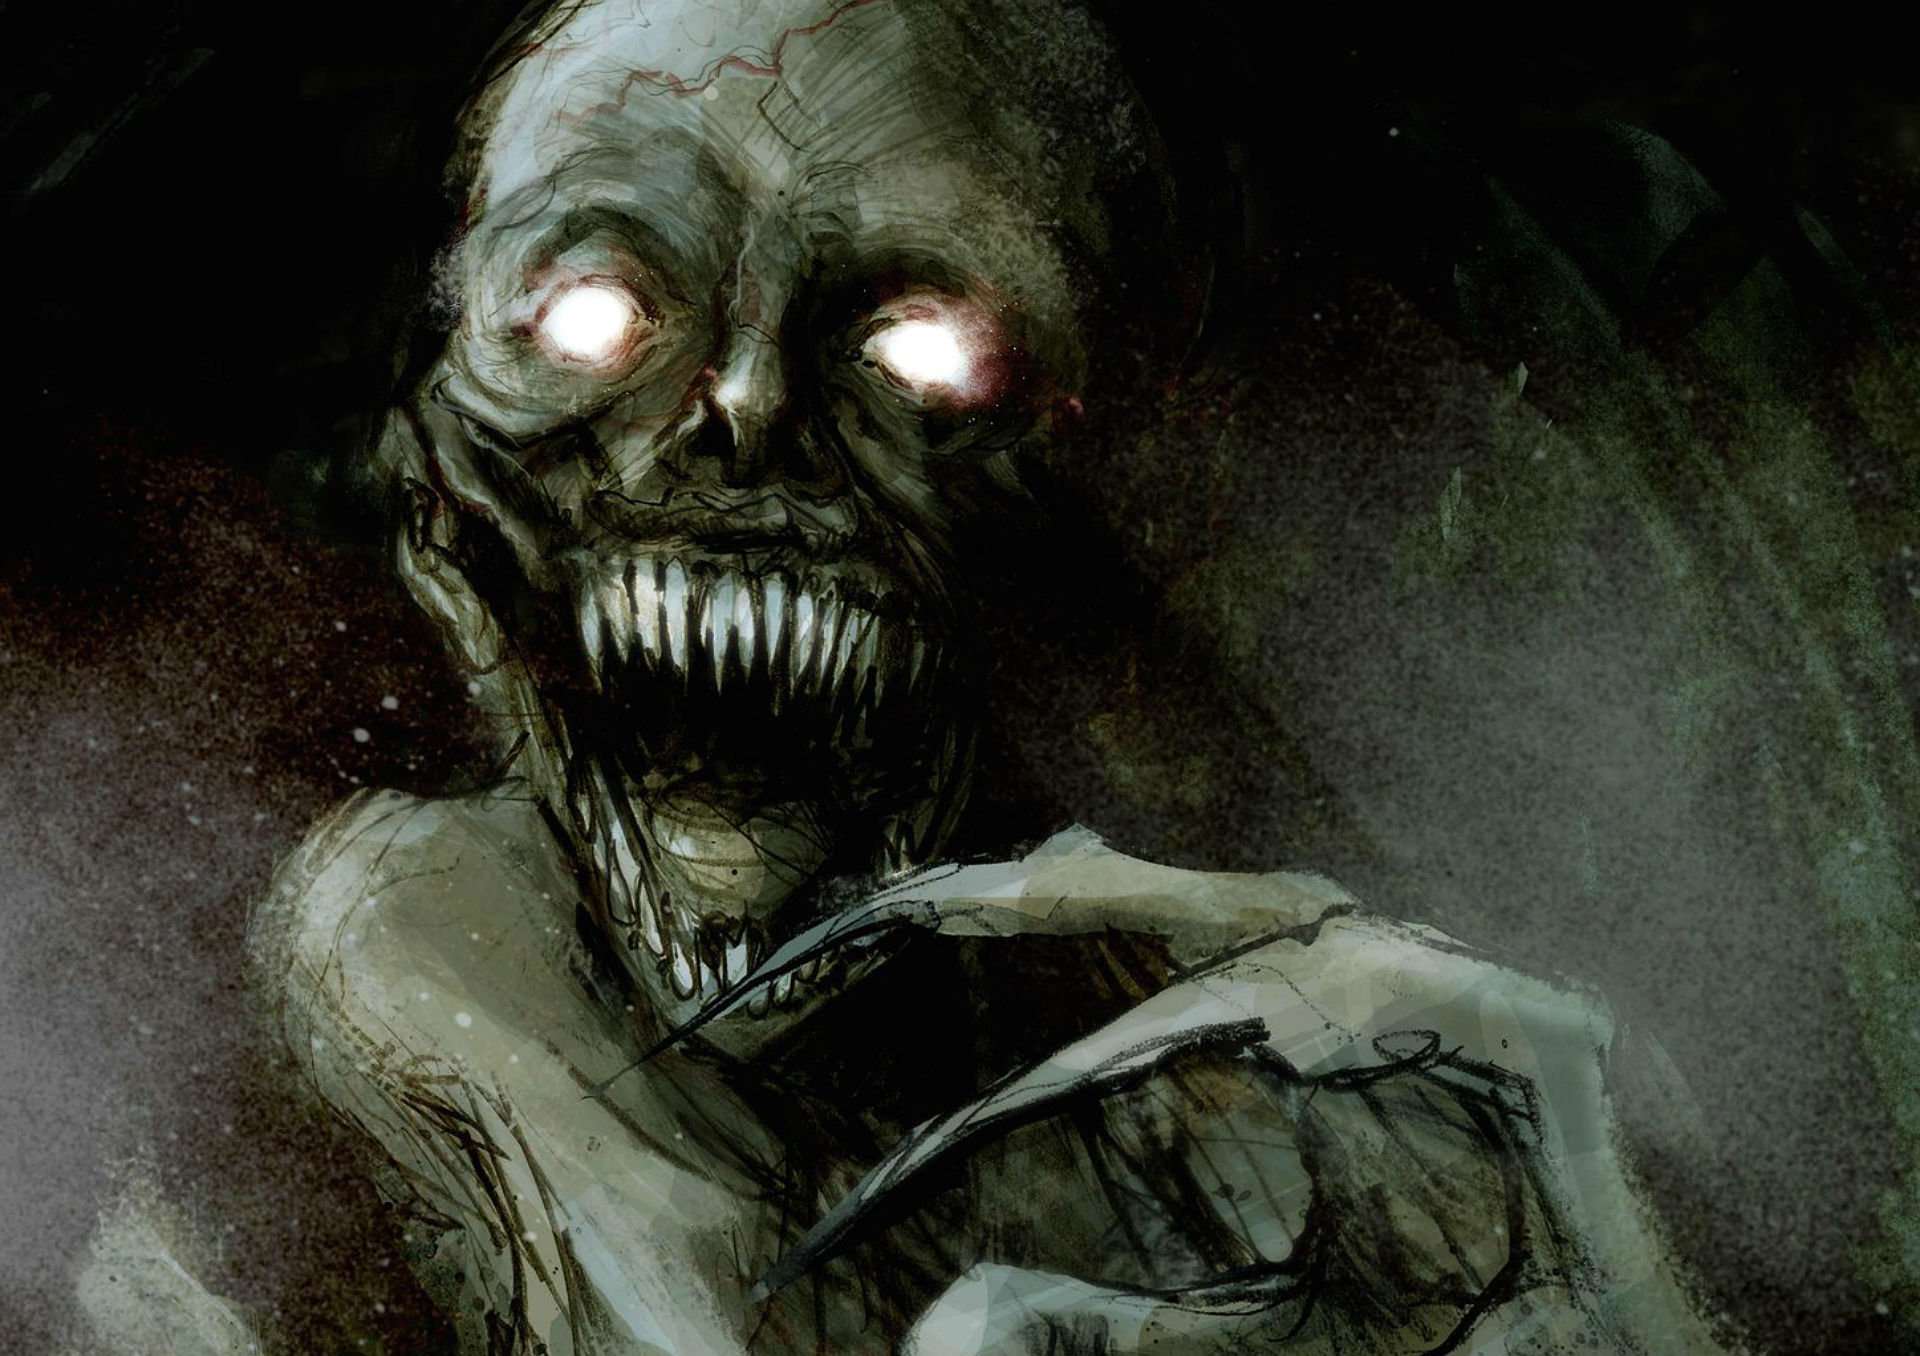 Horror wallpapers Pictures Images 1920x1356